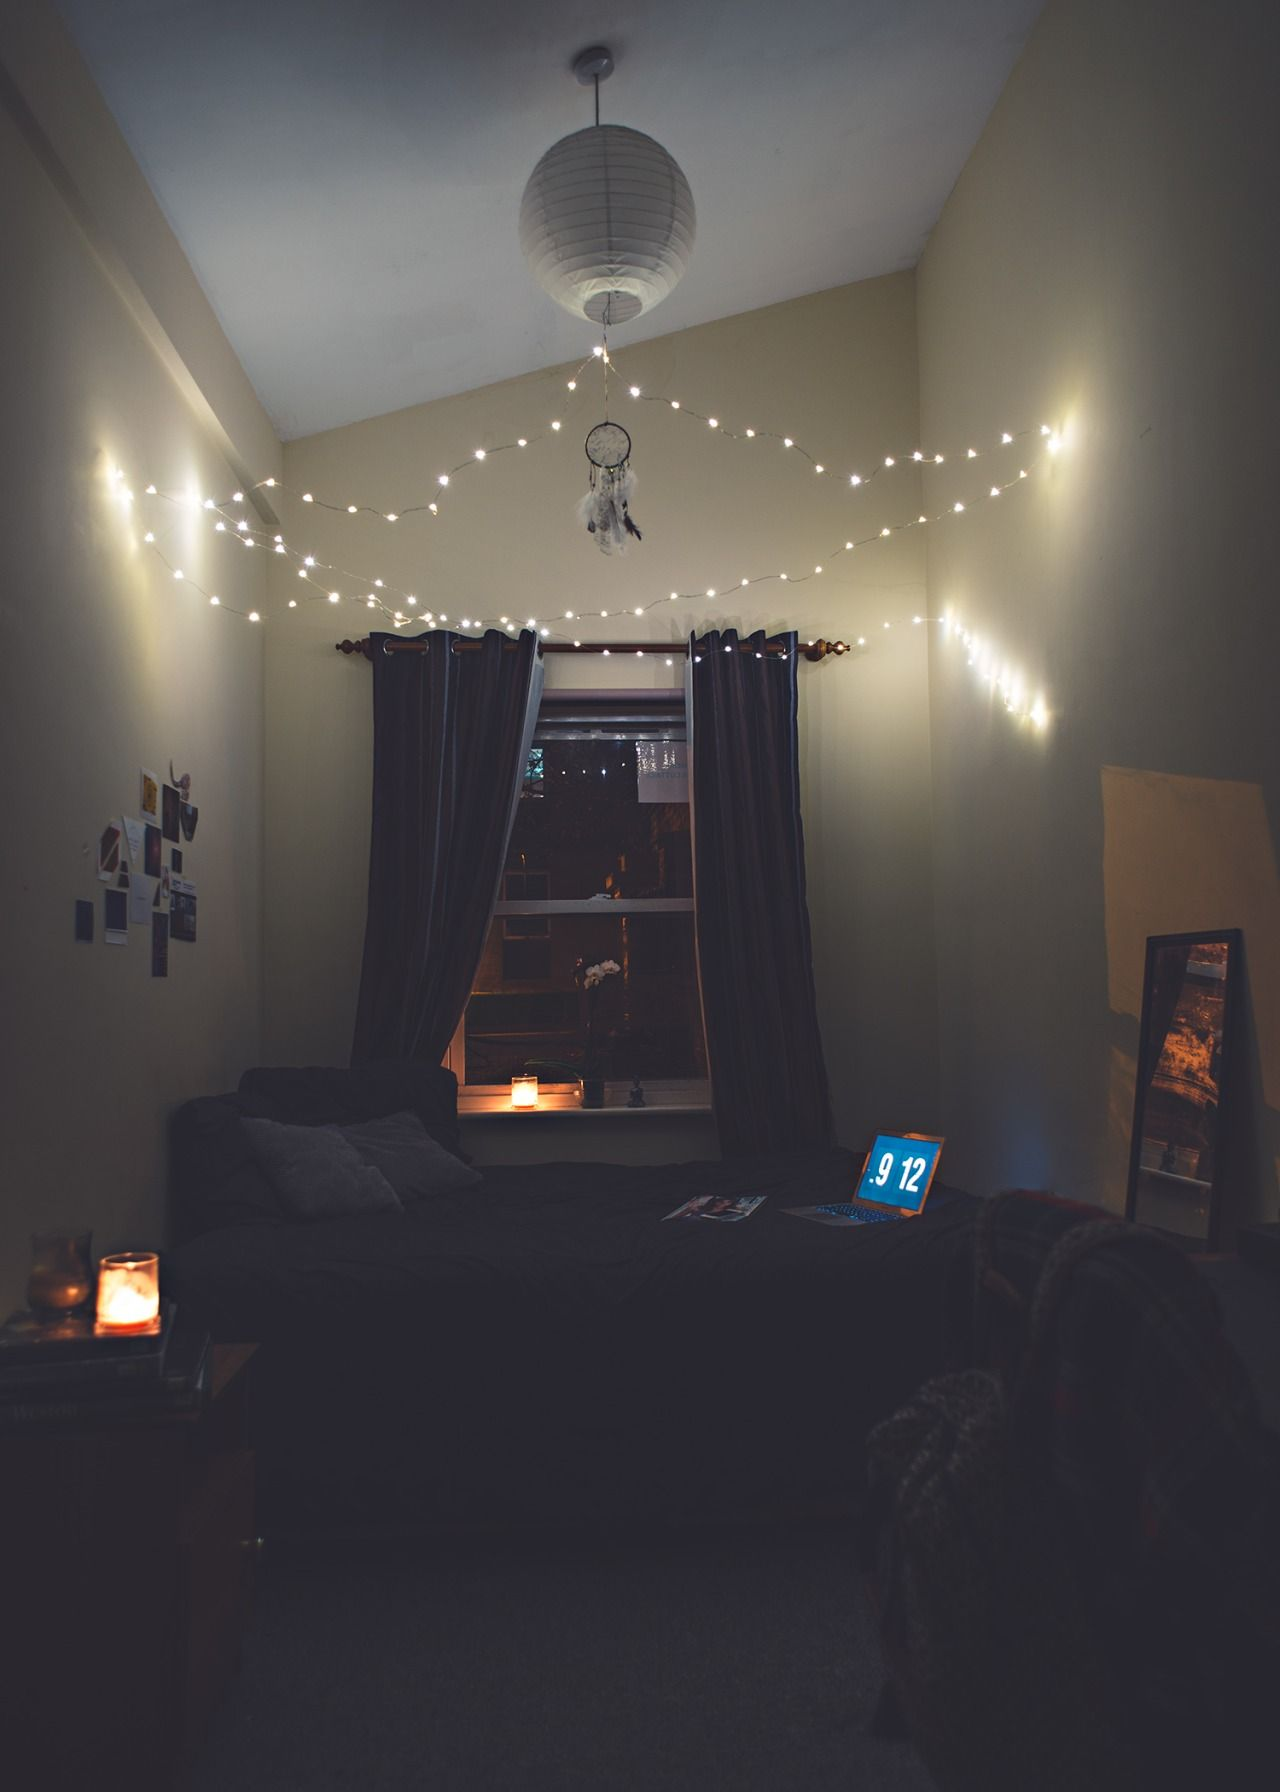 Fairy Lights Kids Room Snapchat Life1nmot1on Small Bedroom Interior Small